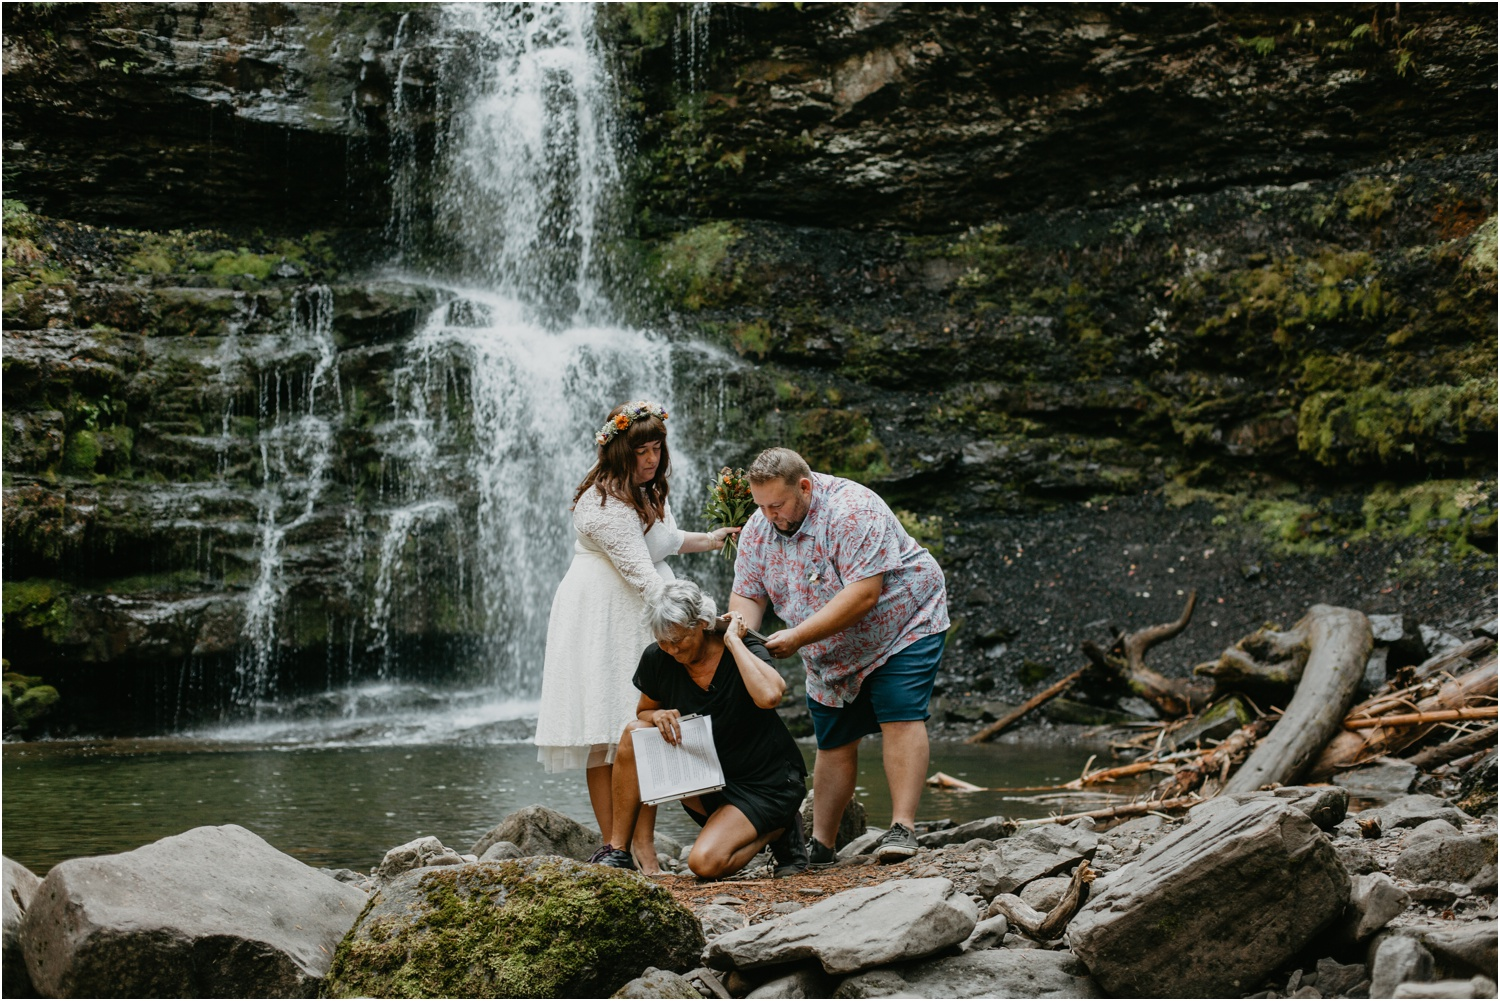 Courtney Jess Photography,Cranbrook wedding photographer,Kimberley Wedding Photographer,donna marie marriage commisioner,fernie elope,fernie elopement,fernie elopement photographer,fernie waterfall elopement,fernie wedding,matheson falls,